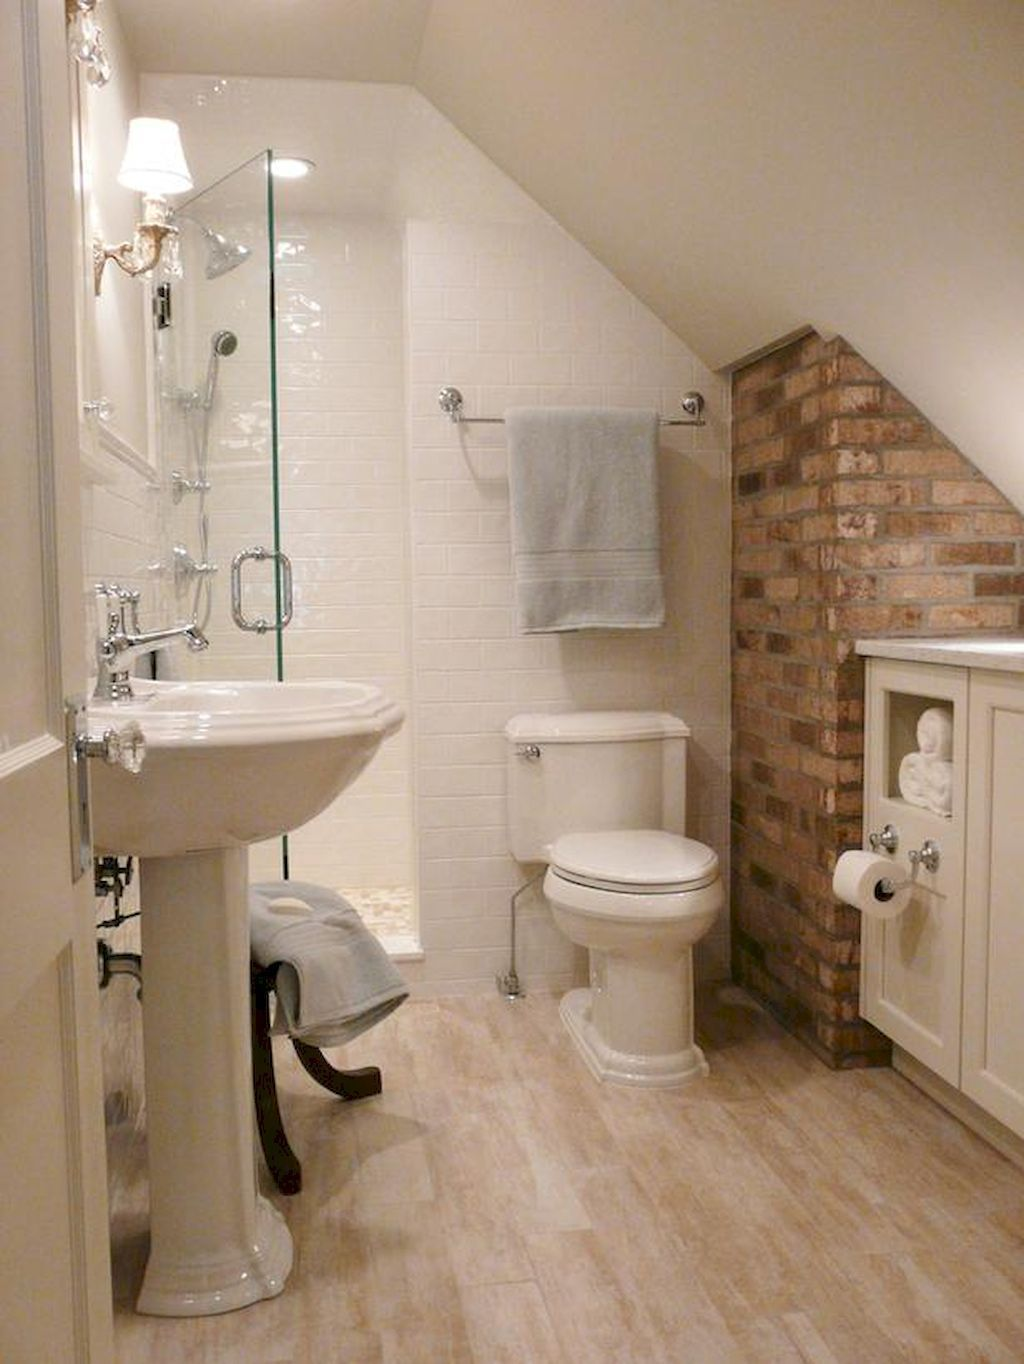 Best Small Bathroom Remodel Ideas On A Budget 35  Bathroom Classy Bathroom Renovation Ideas For Tight Budget Design Inspiration